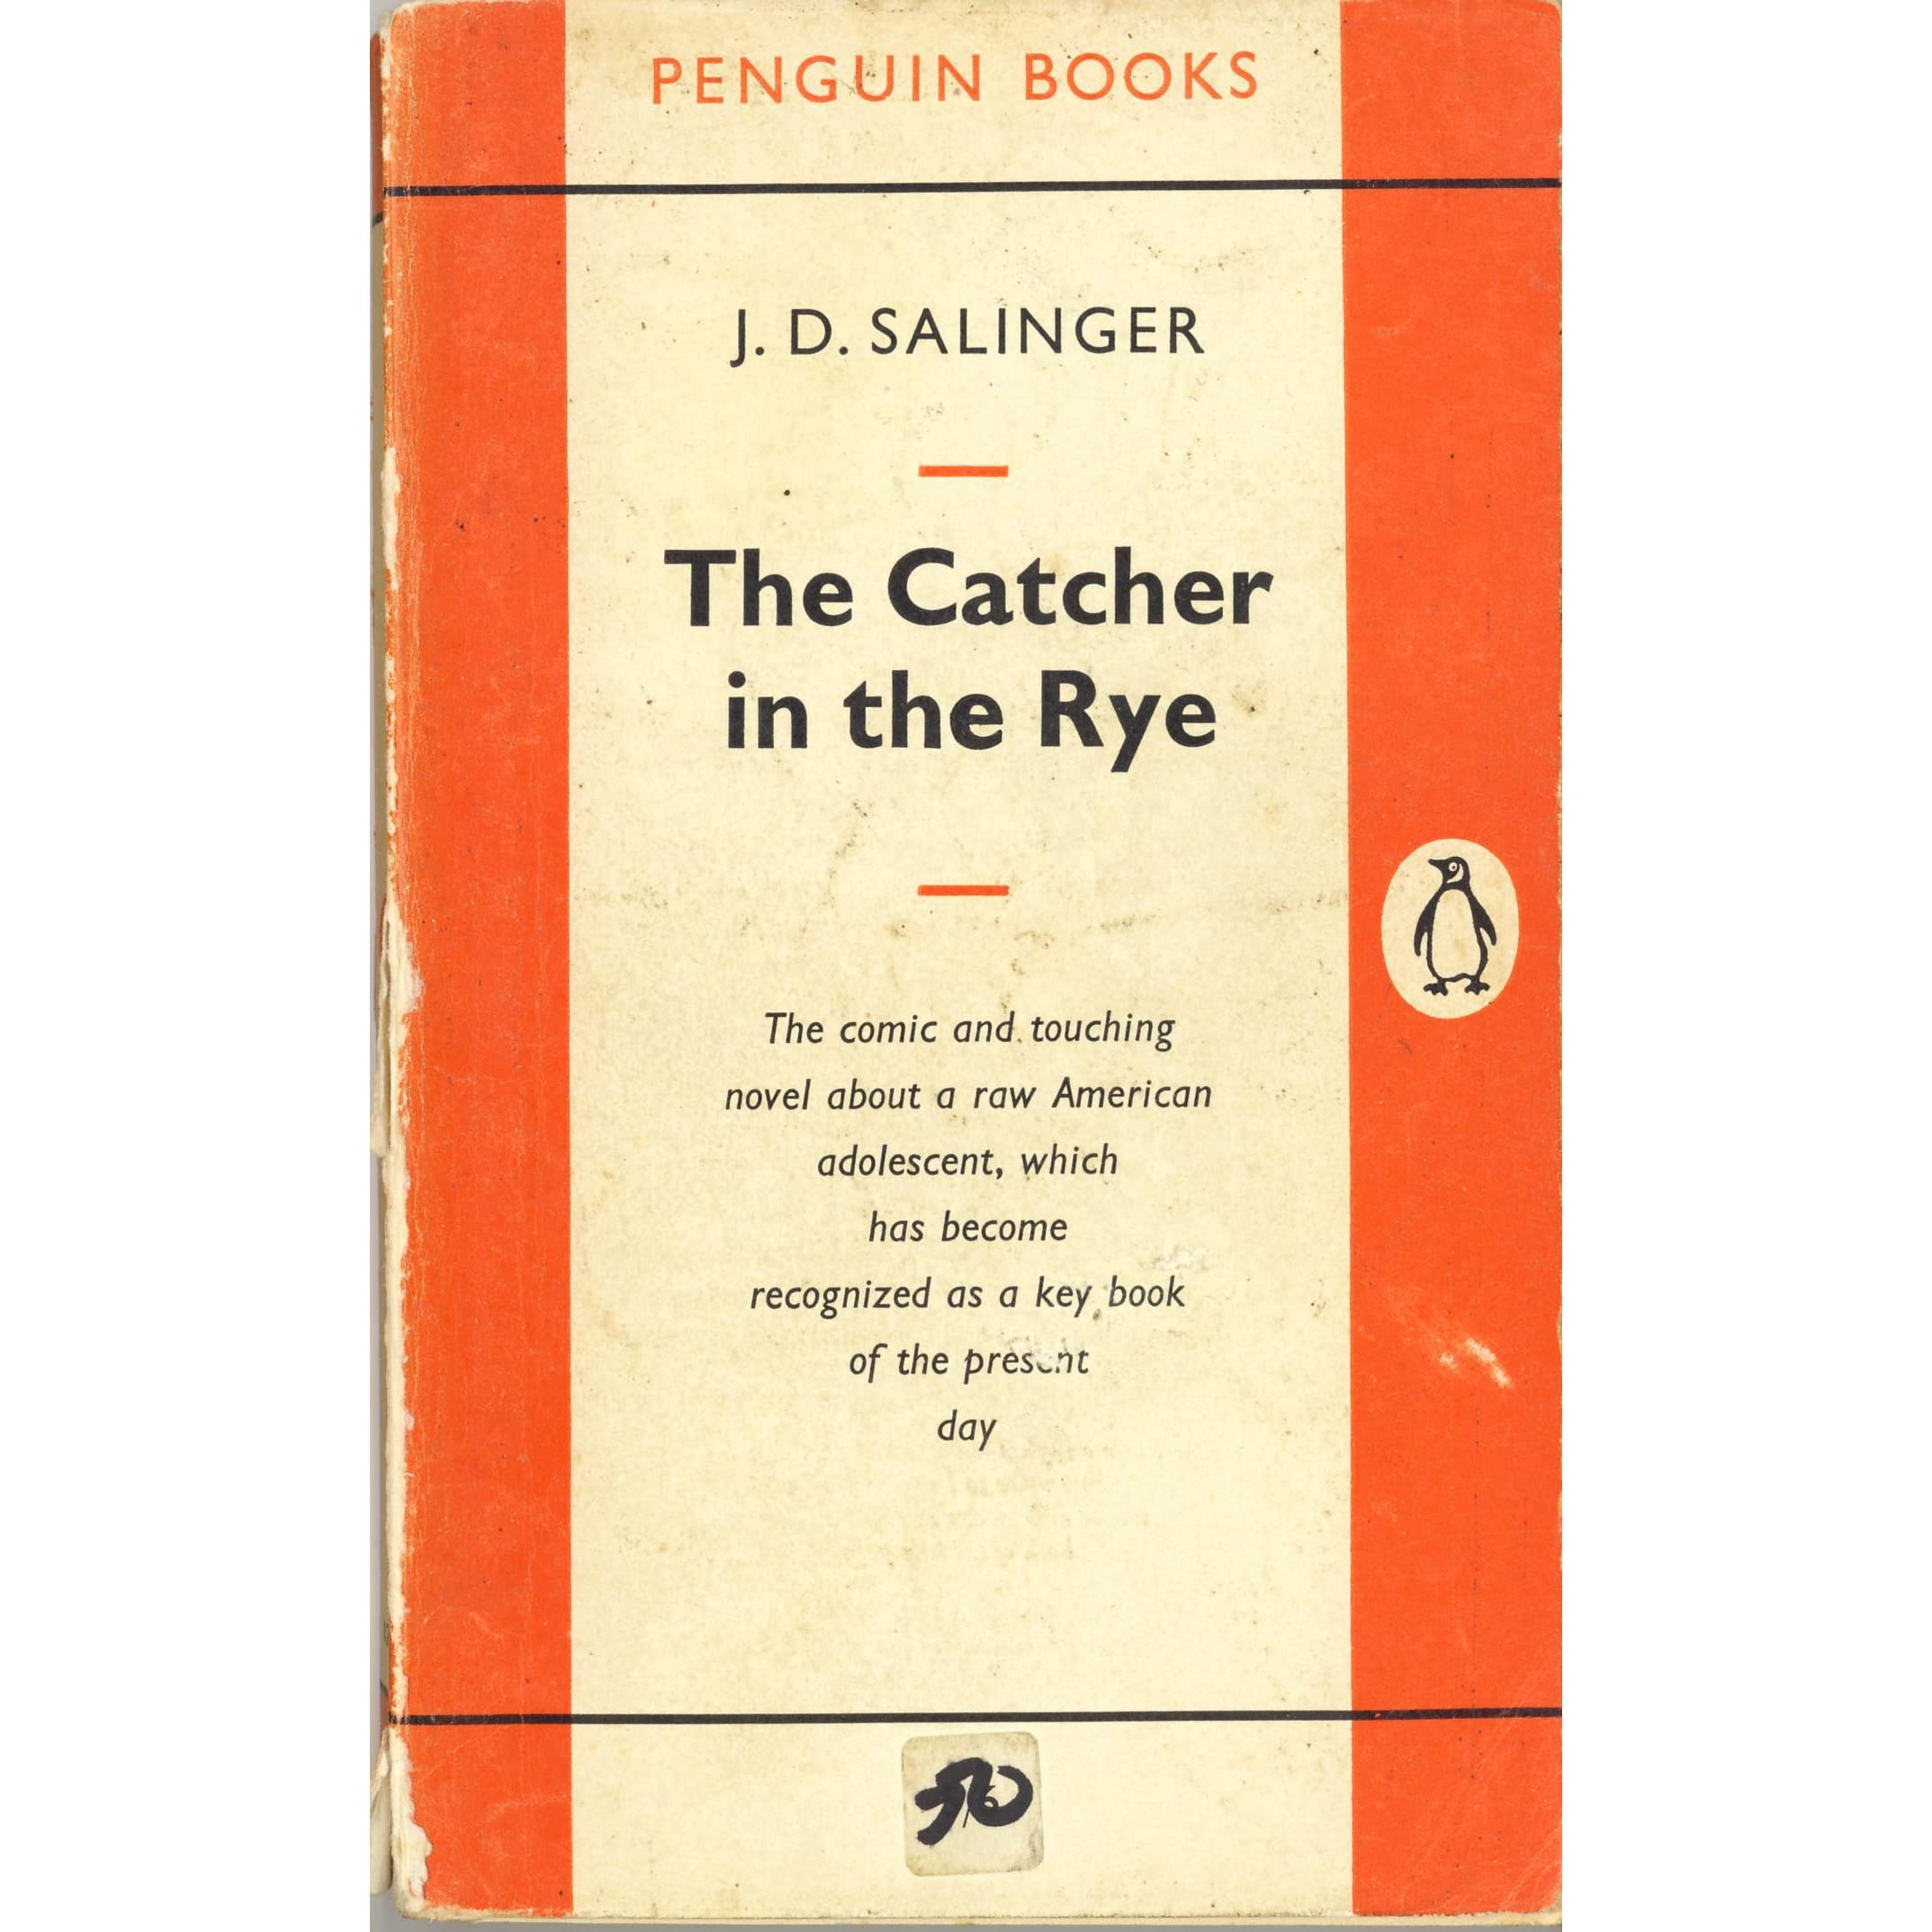 exposing societies follies in the catcher in the rye by j d salinger Summary: jd salinger's novel the catcher in the rye retains unanimous popularity across north america, not only for its intrinsic themes, motifs, and images, but.